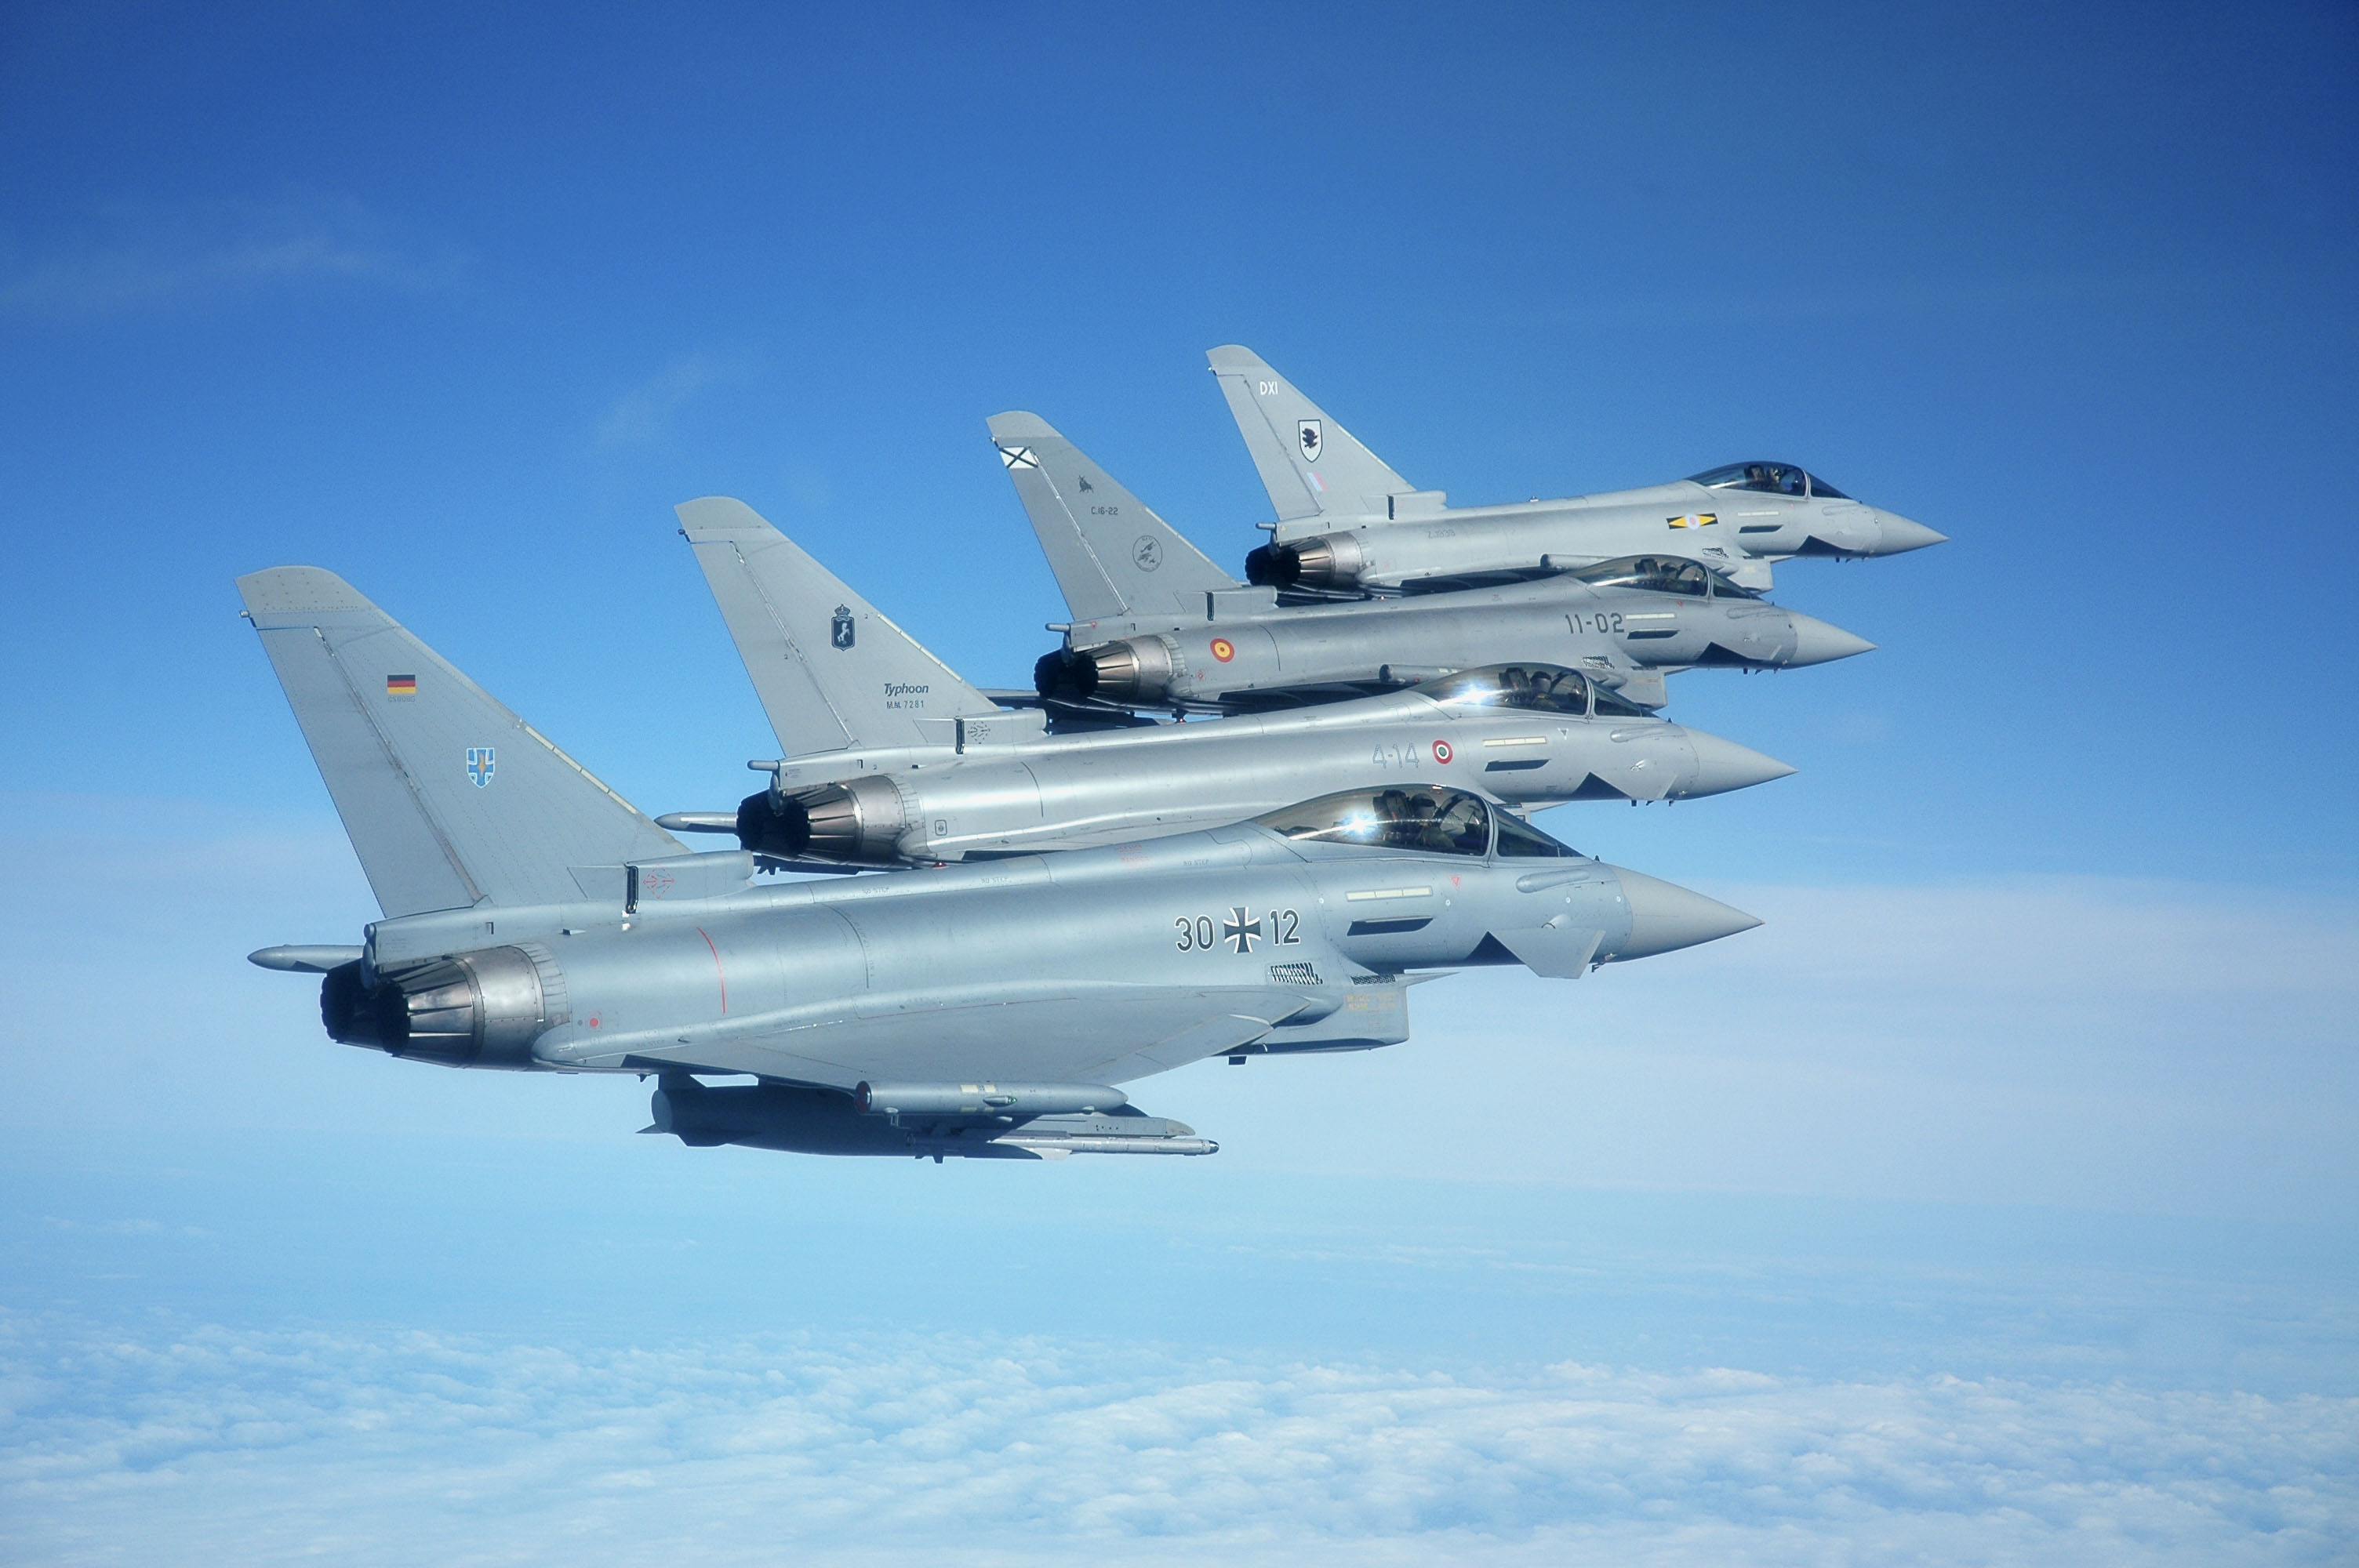 https://world.eurofighter.com/assets/Uploads/four-nation-first-joint-exercise-in-moron-635.jpg